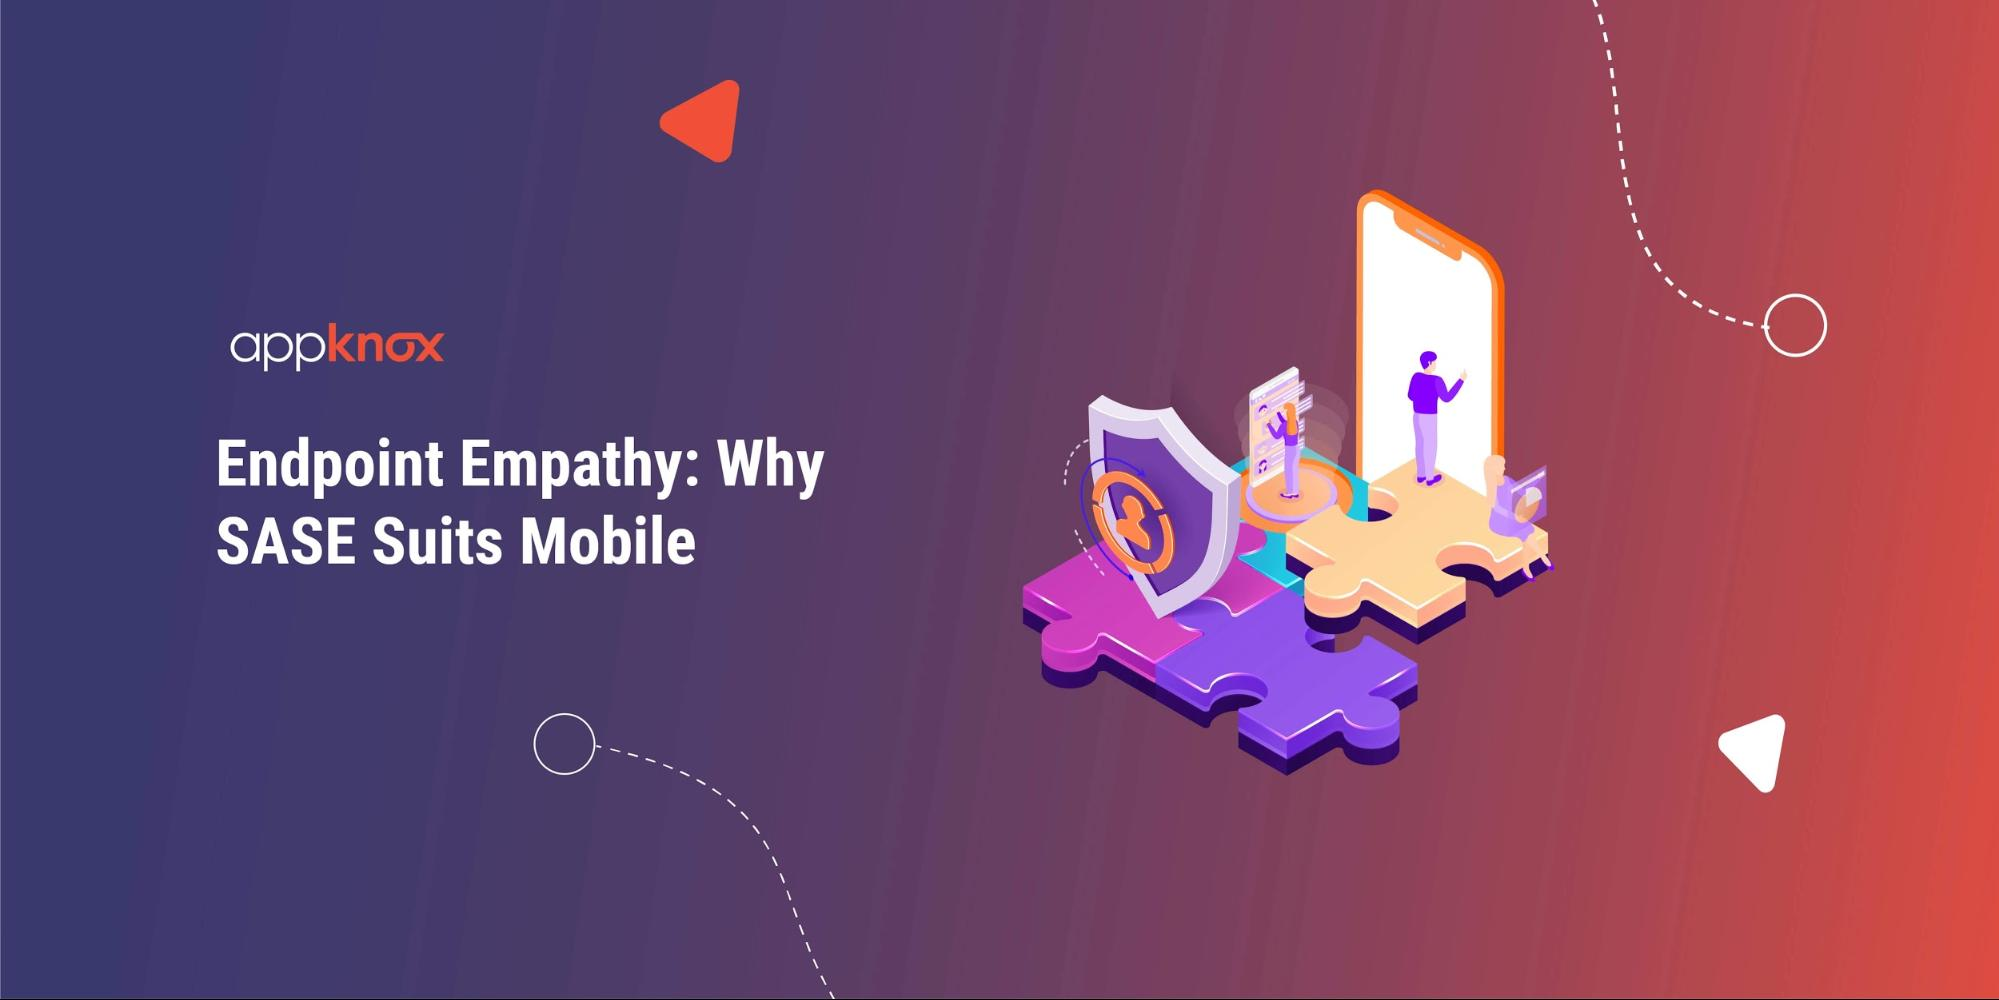 Endpoint Empathy: Why SASE Suits Mobile